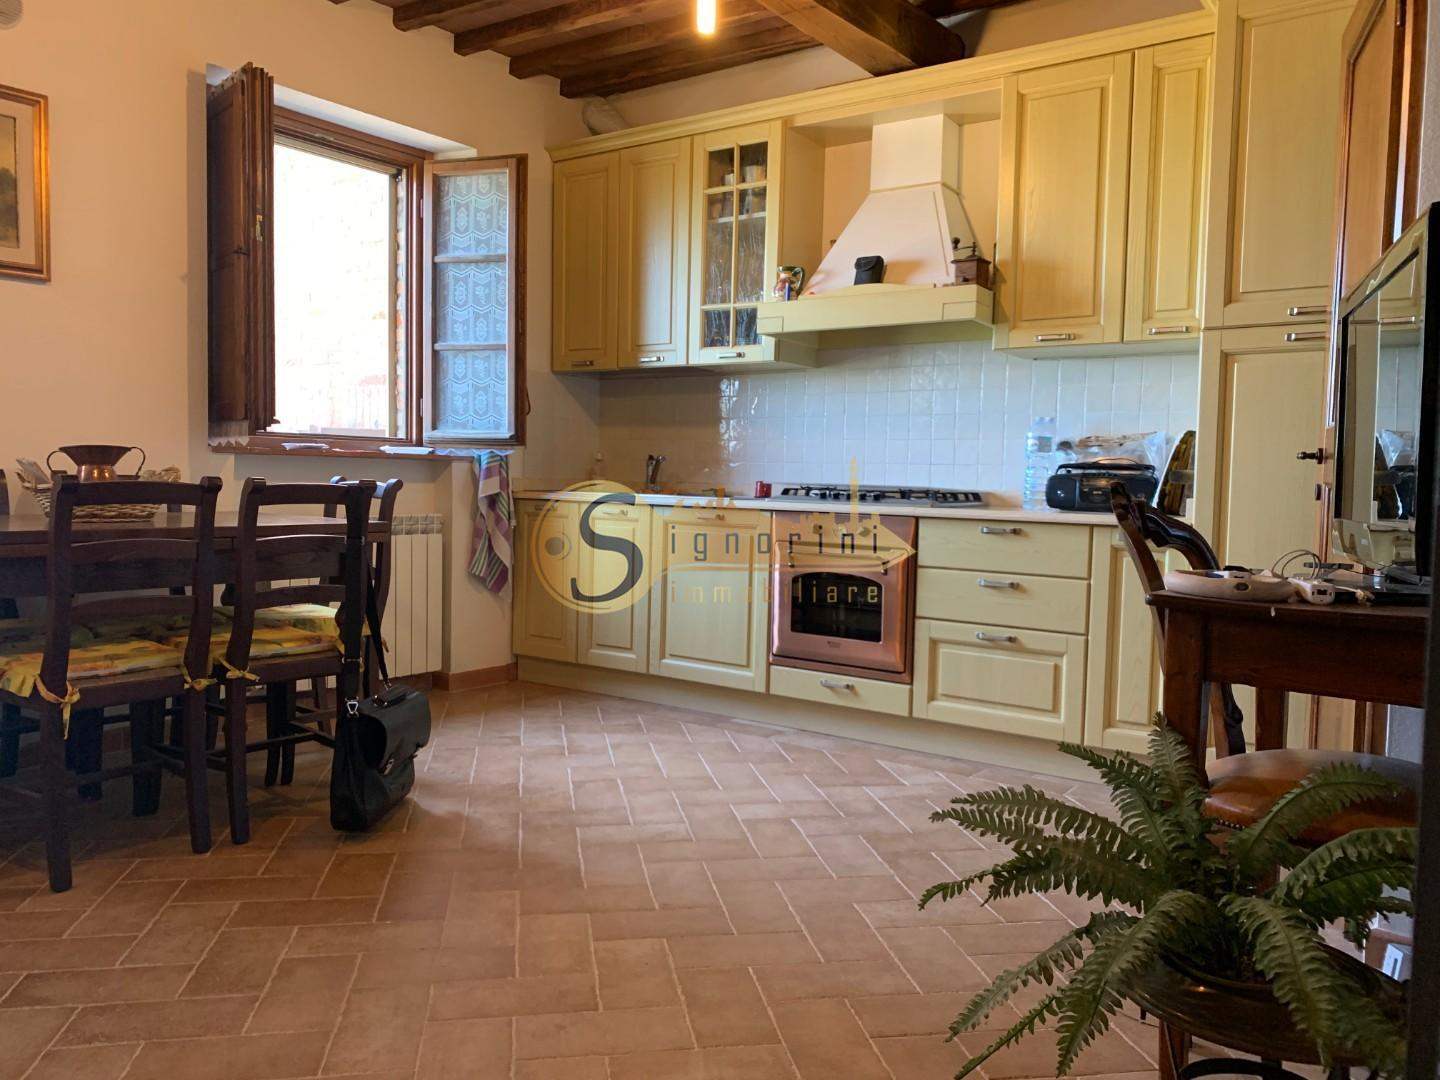 Townhouses for sale in Asciano (SI)